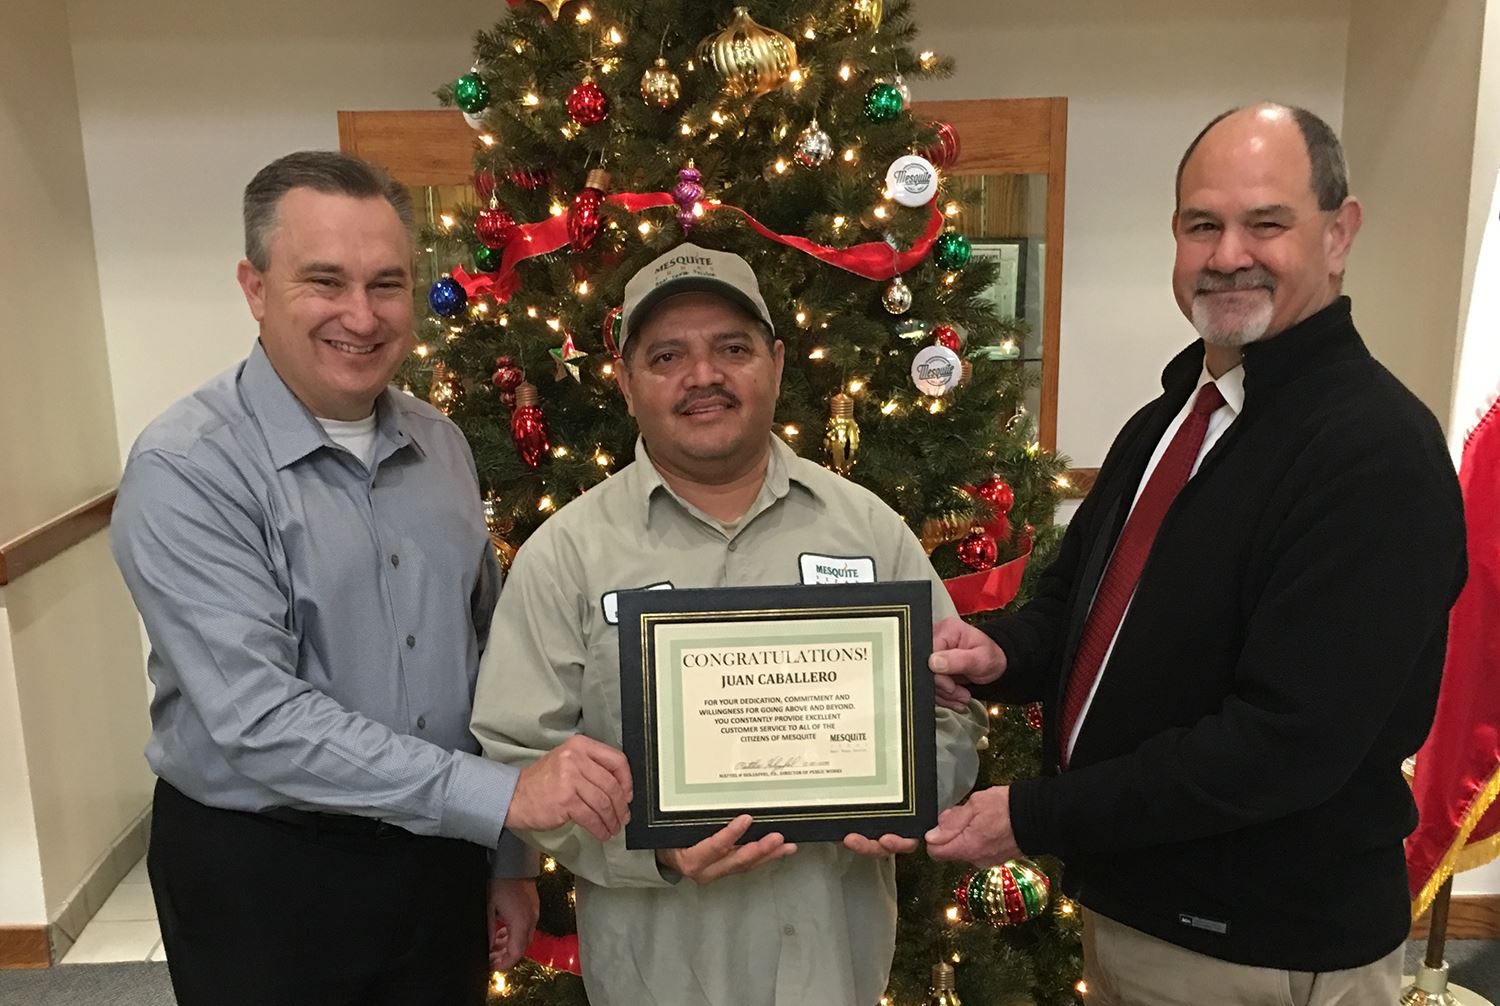 12-21-18 City Manager Cliff Keheley-Solid Waste worker Juan Caballero-PW Dir Matt Holzapfel